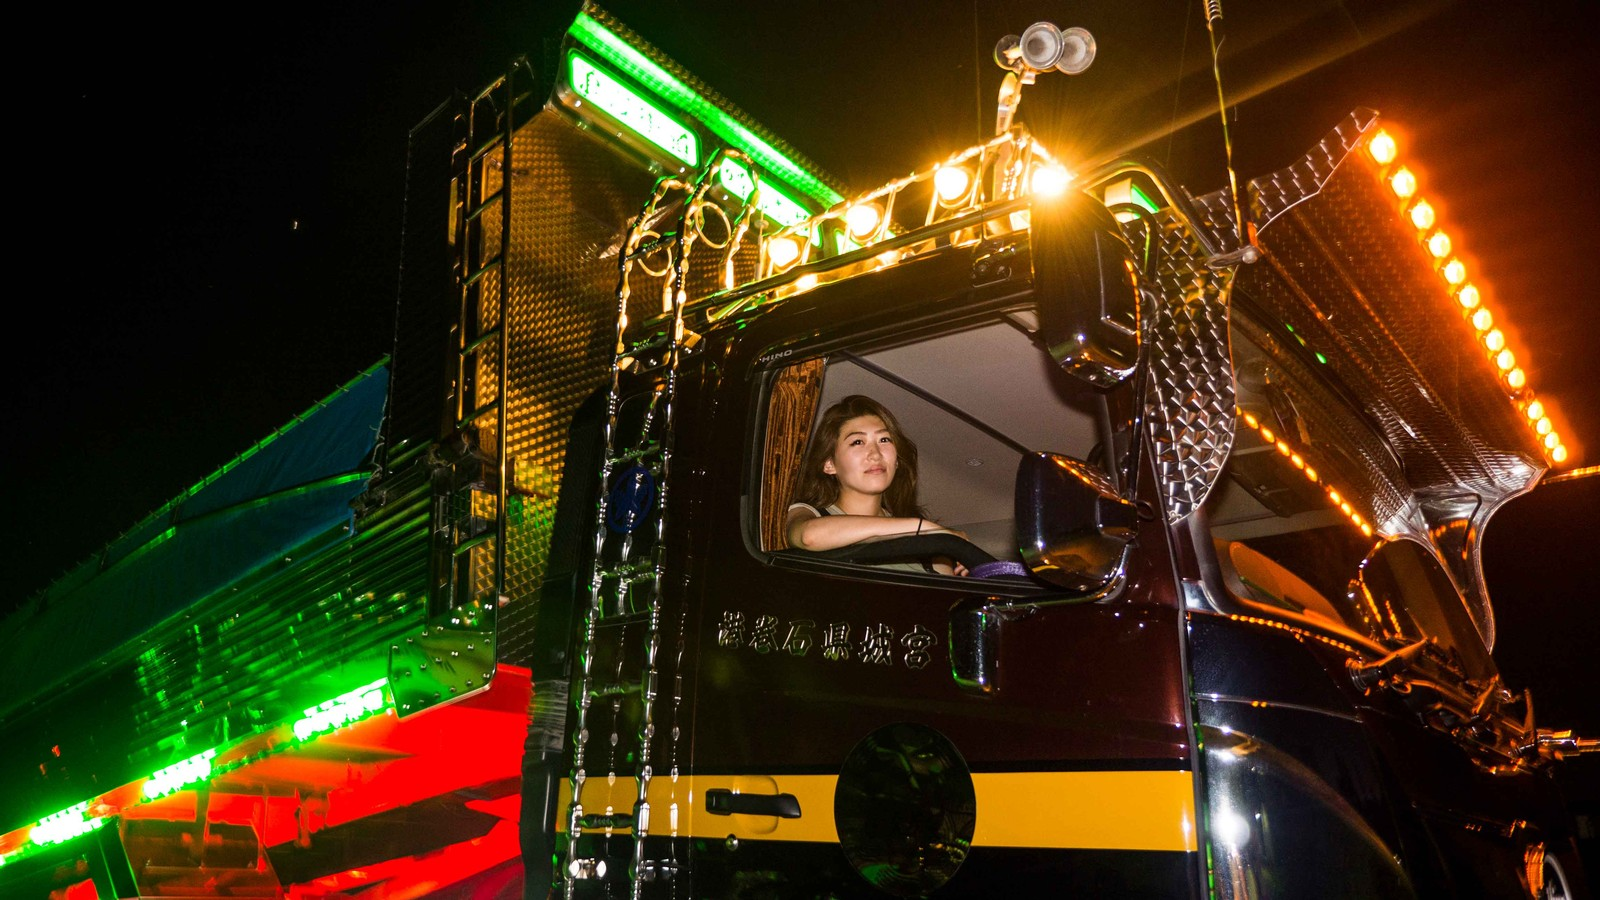 We Meet The Female Truck Driver Gaining Popularity in Japan